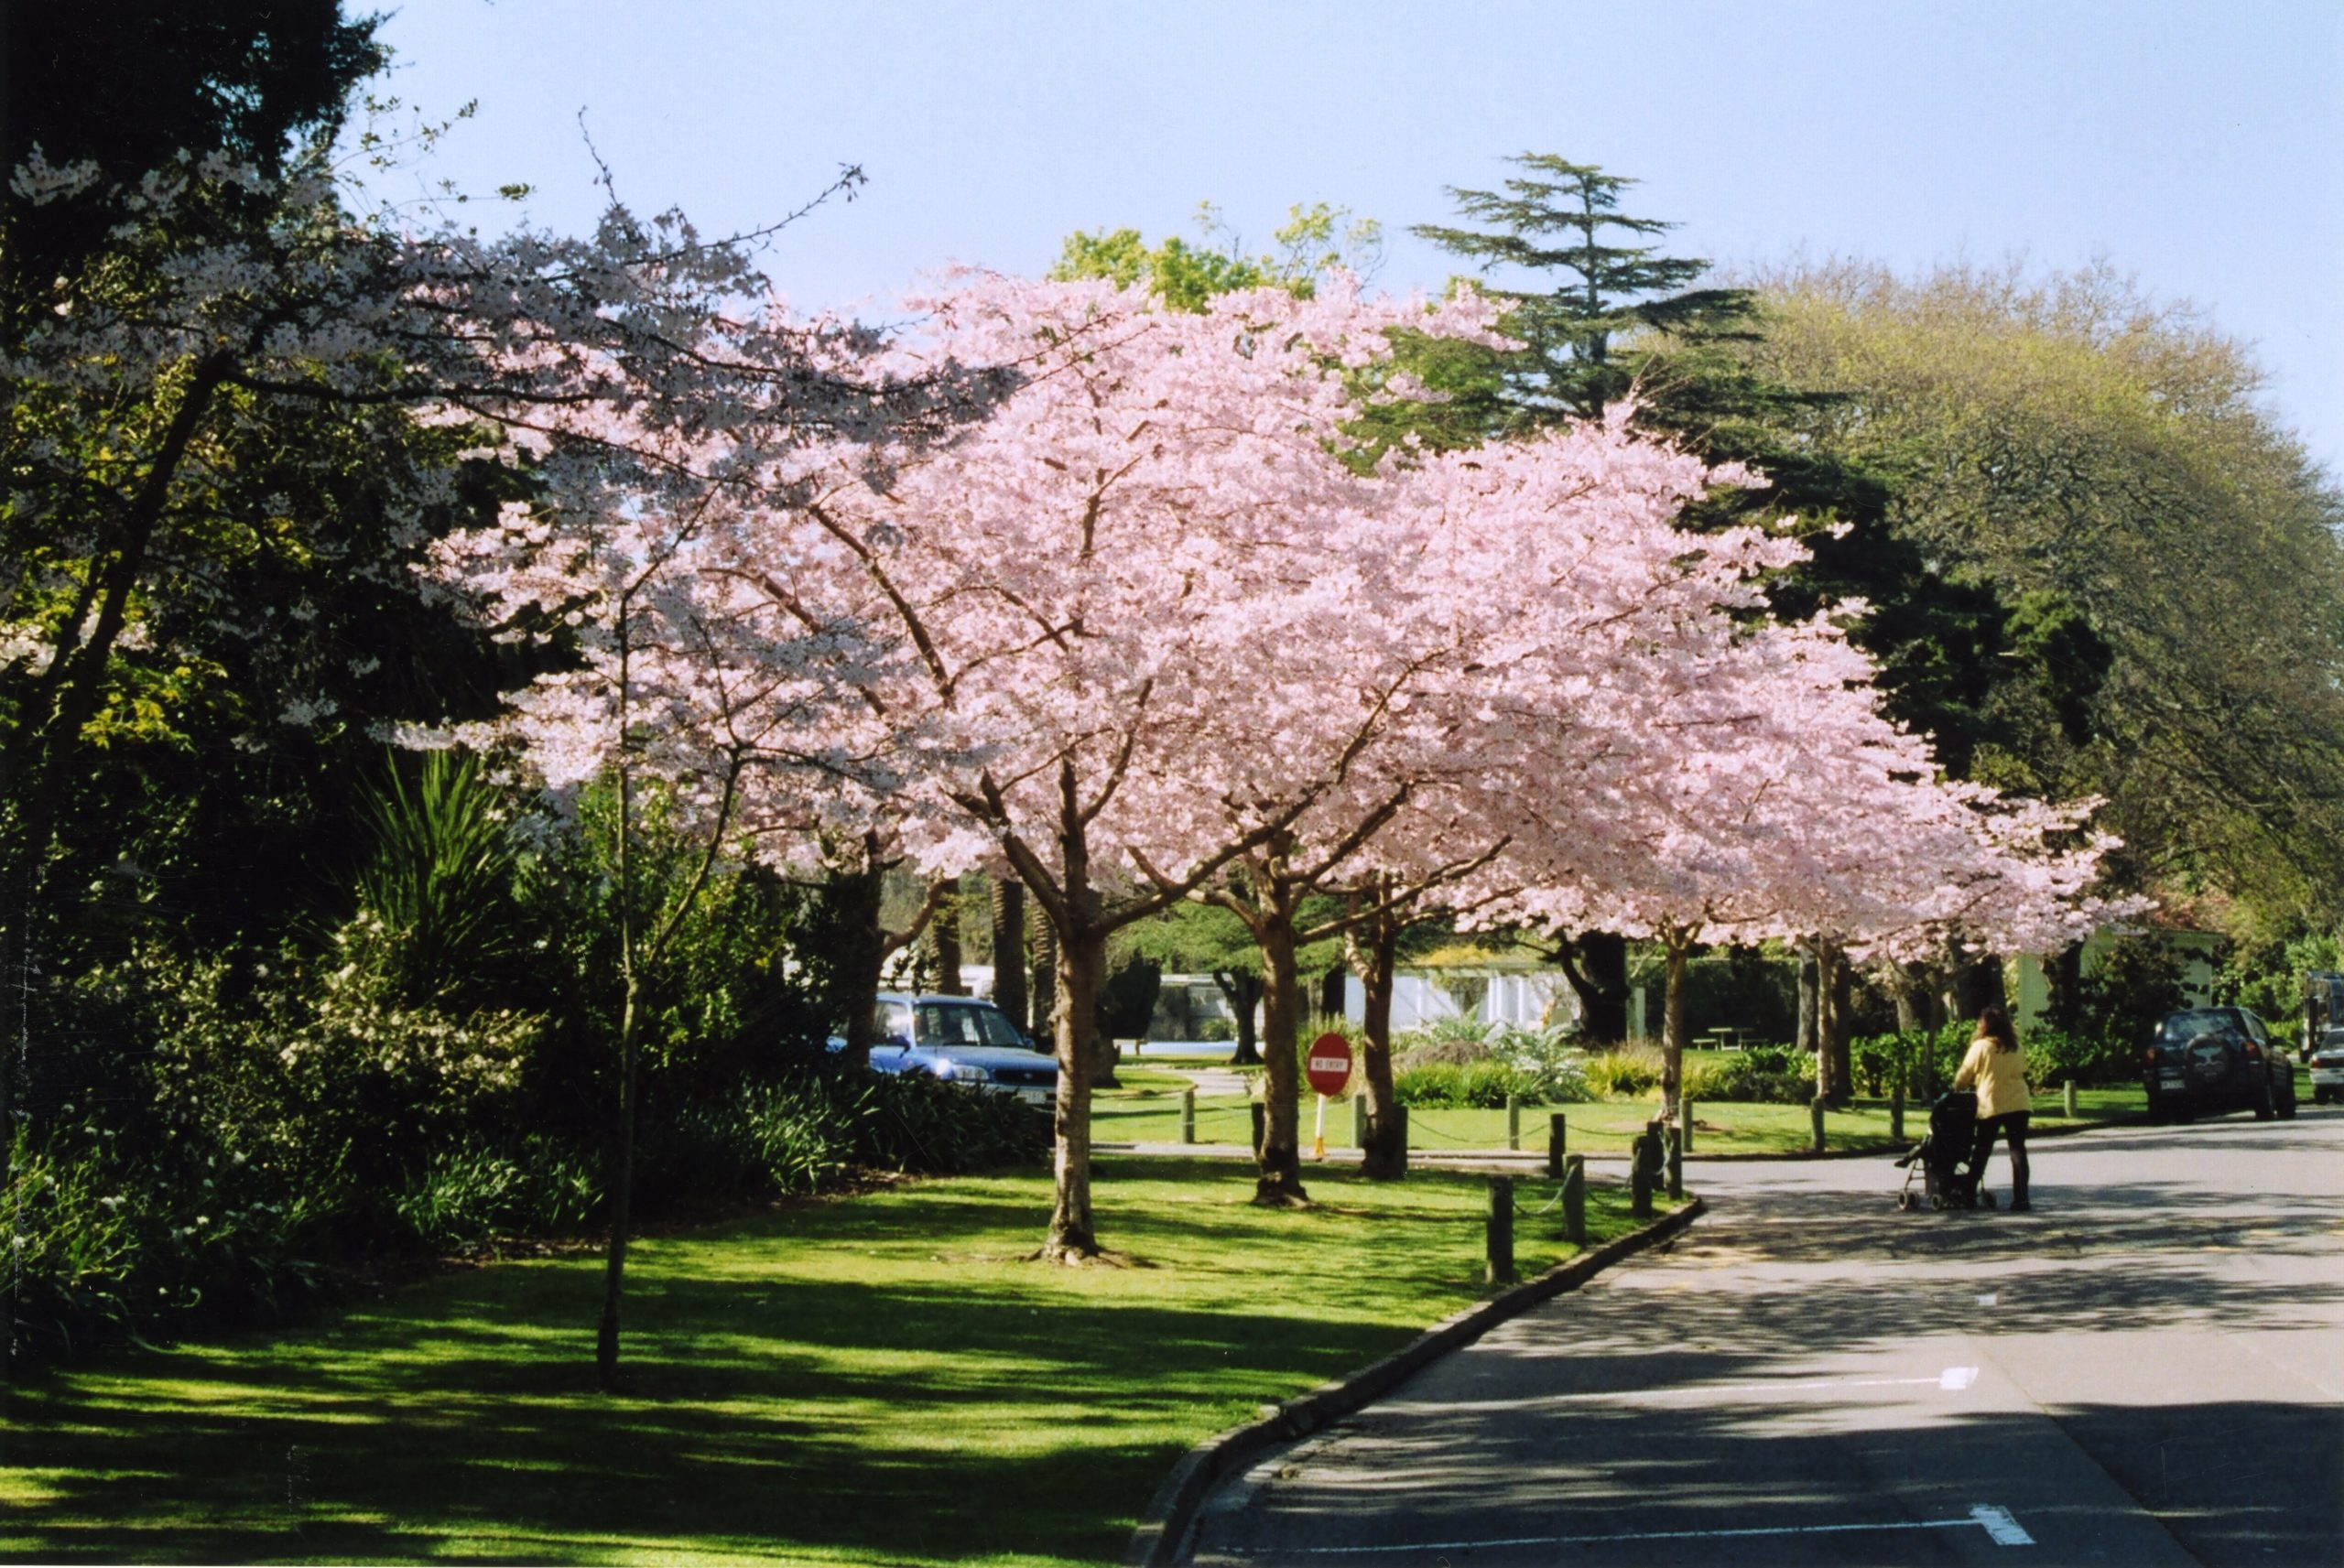 Image depicts three cherry blossom trees in full bloom set next to a roadside.